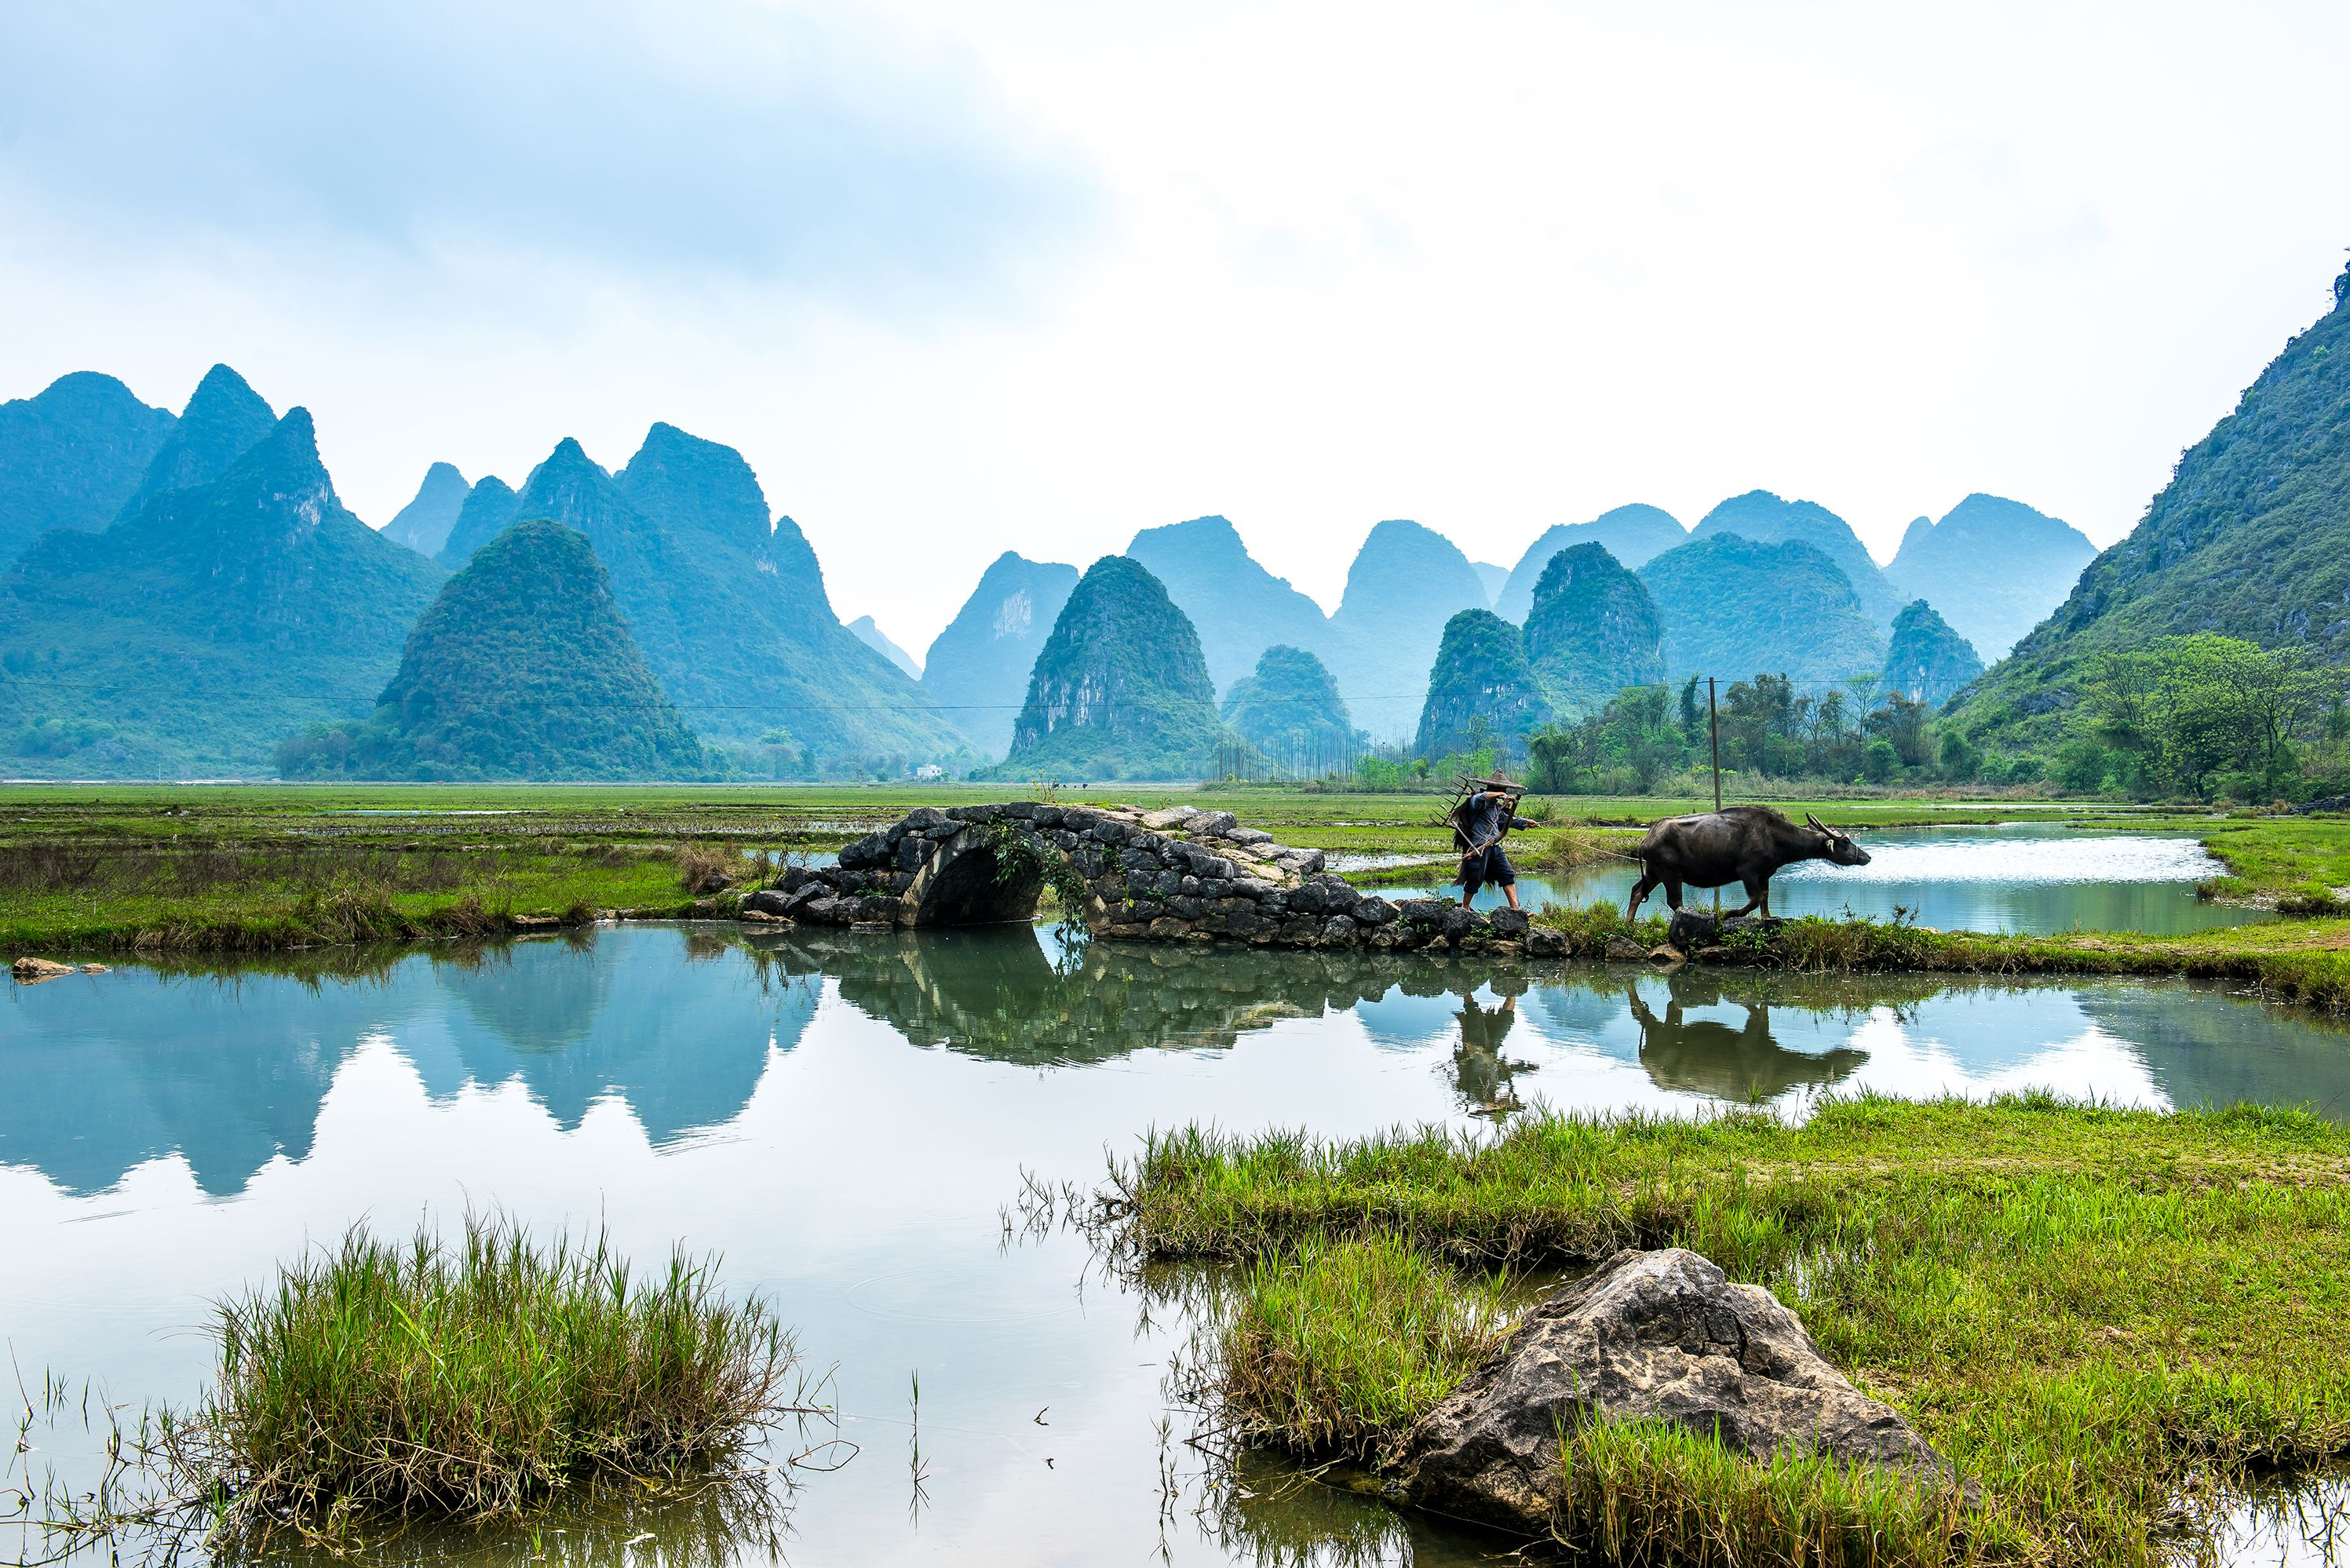 Tianxin Village in Guilin China | Chinese Landscapes